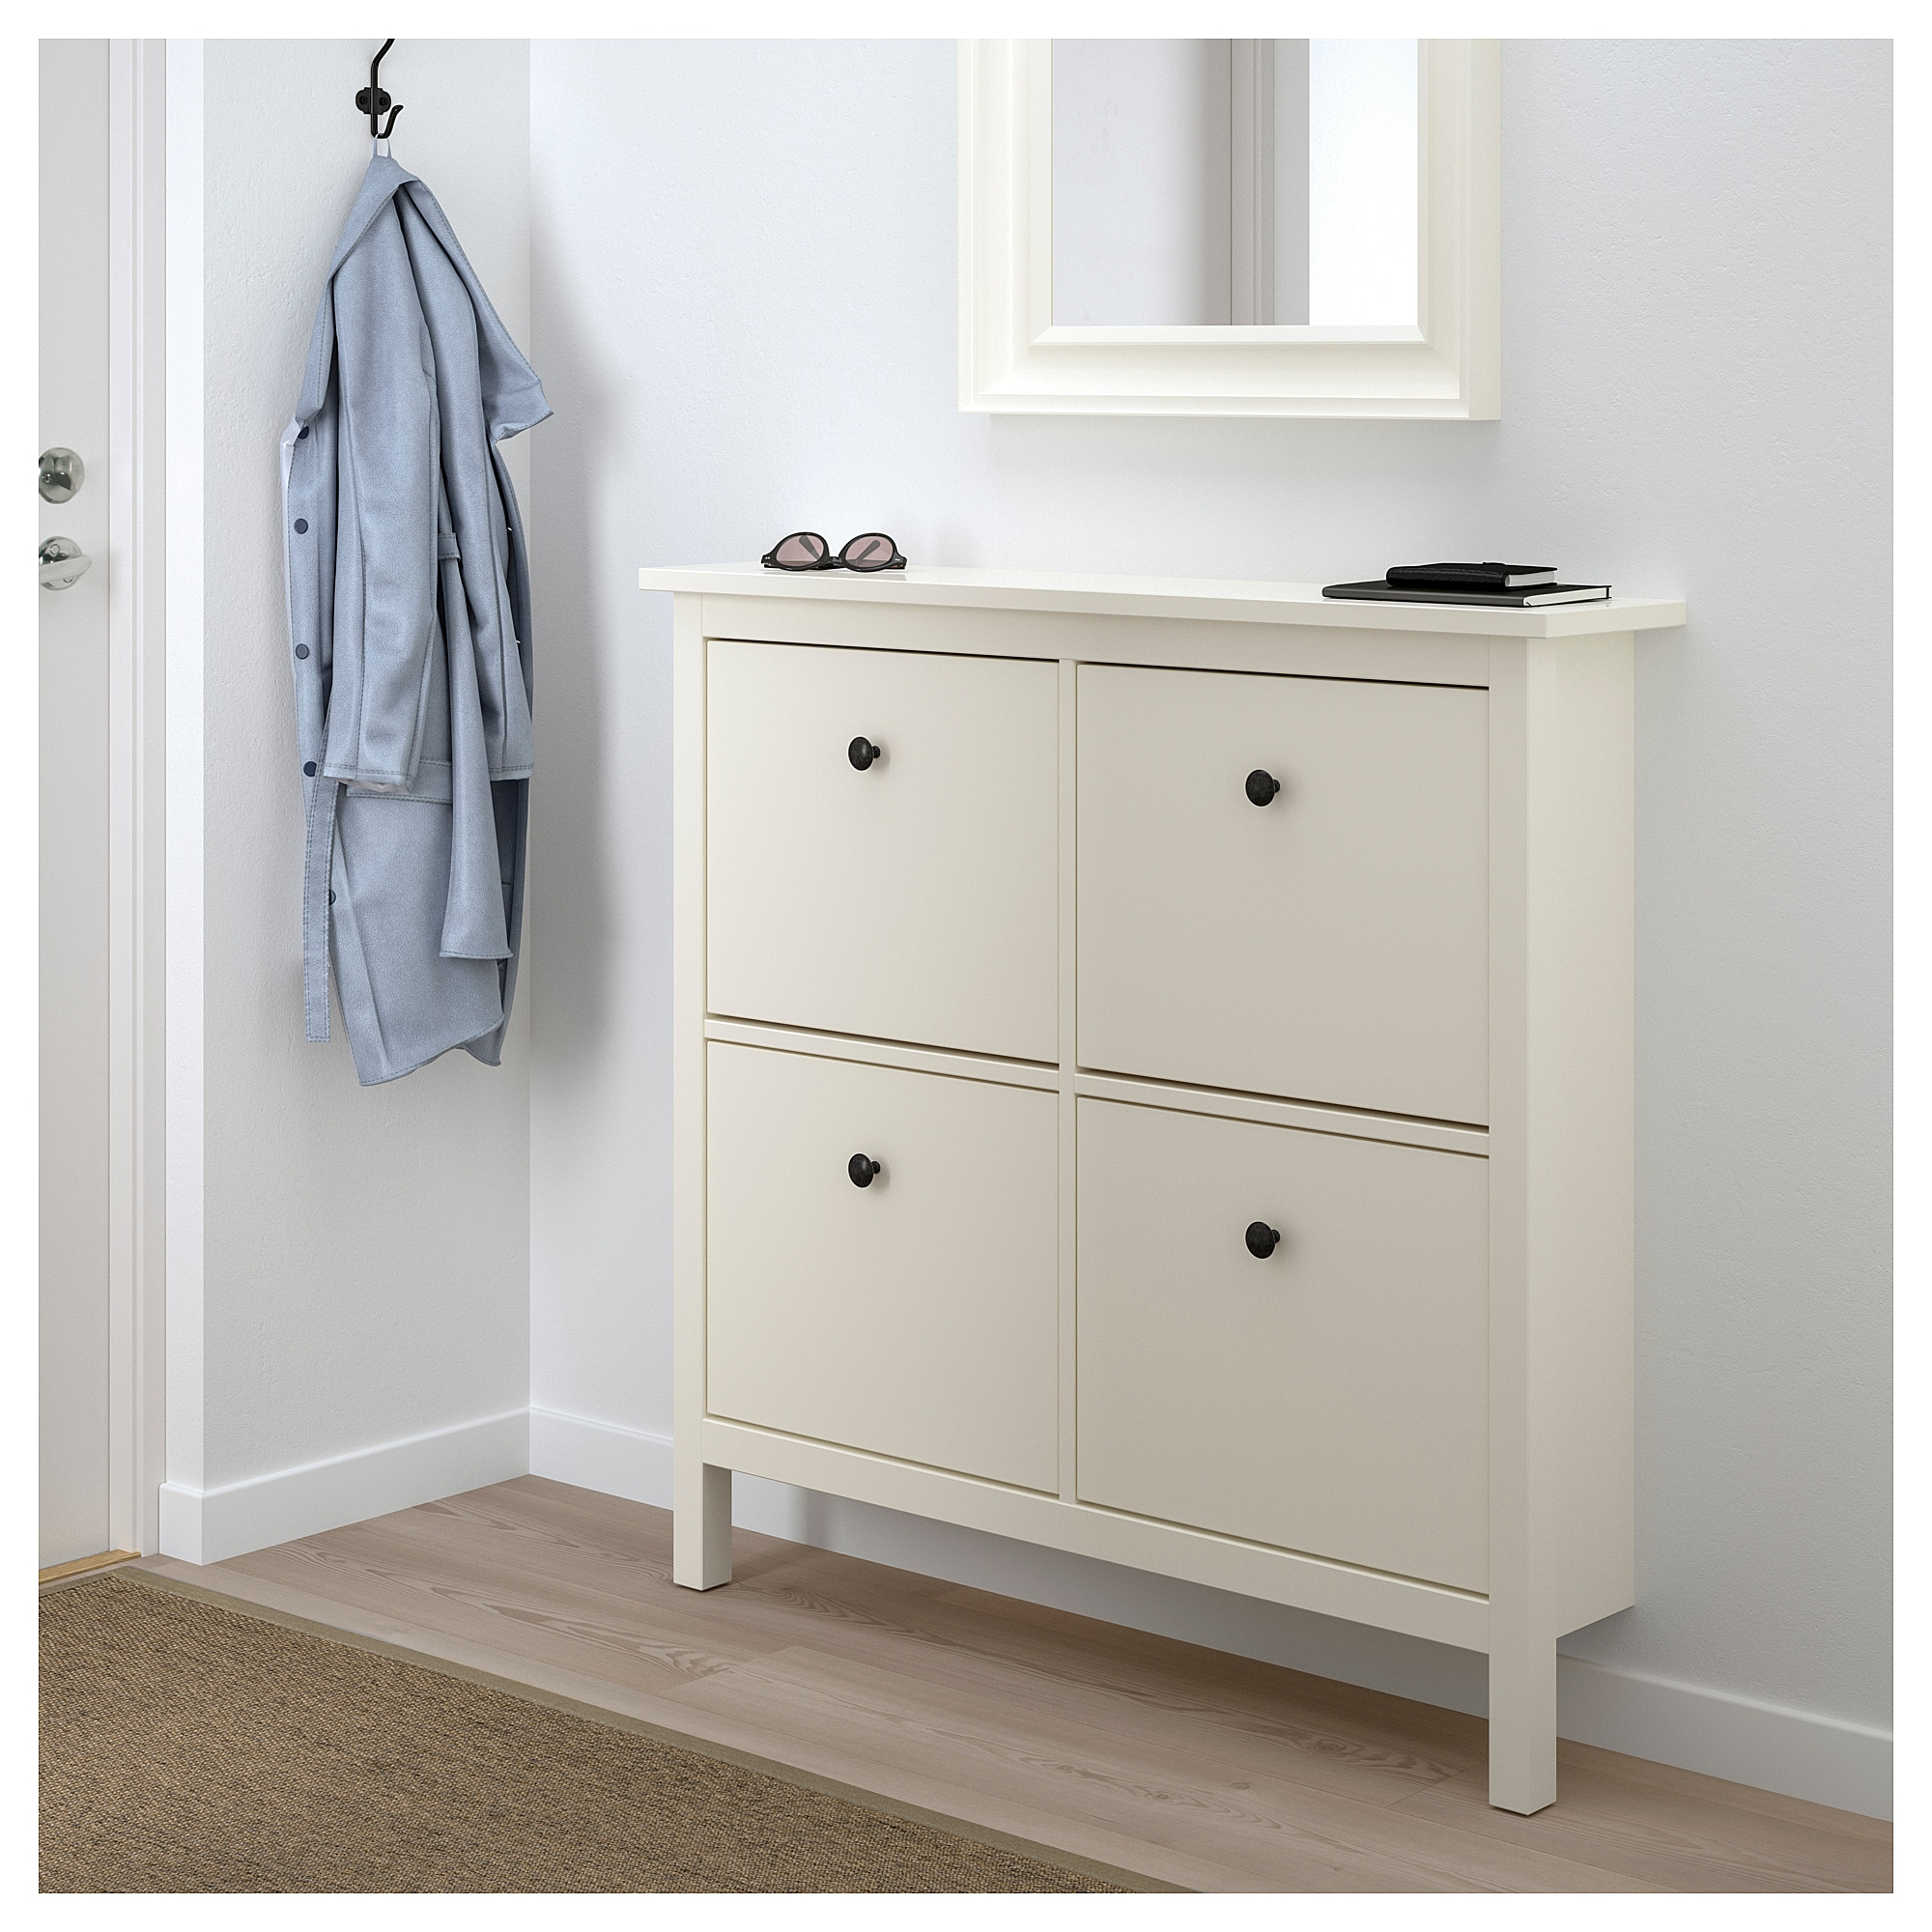 Gentil HEMNES Shoe Cabinet With 4 Compartments   IKEA